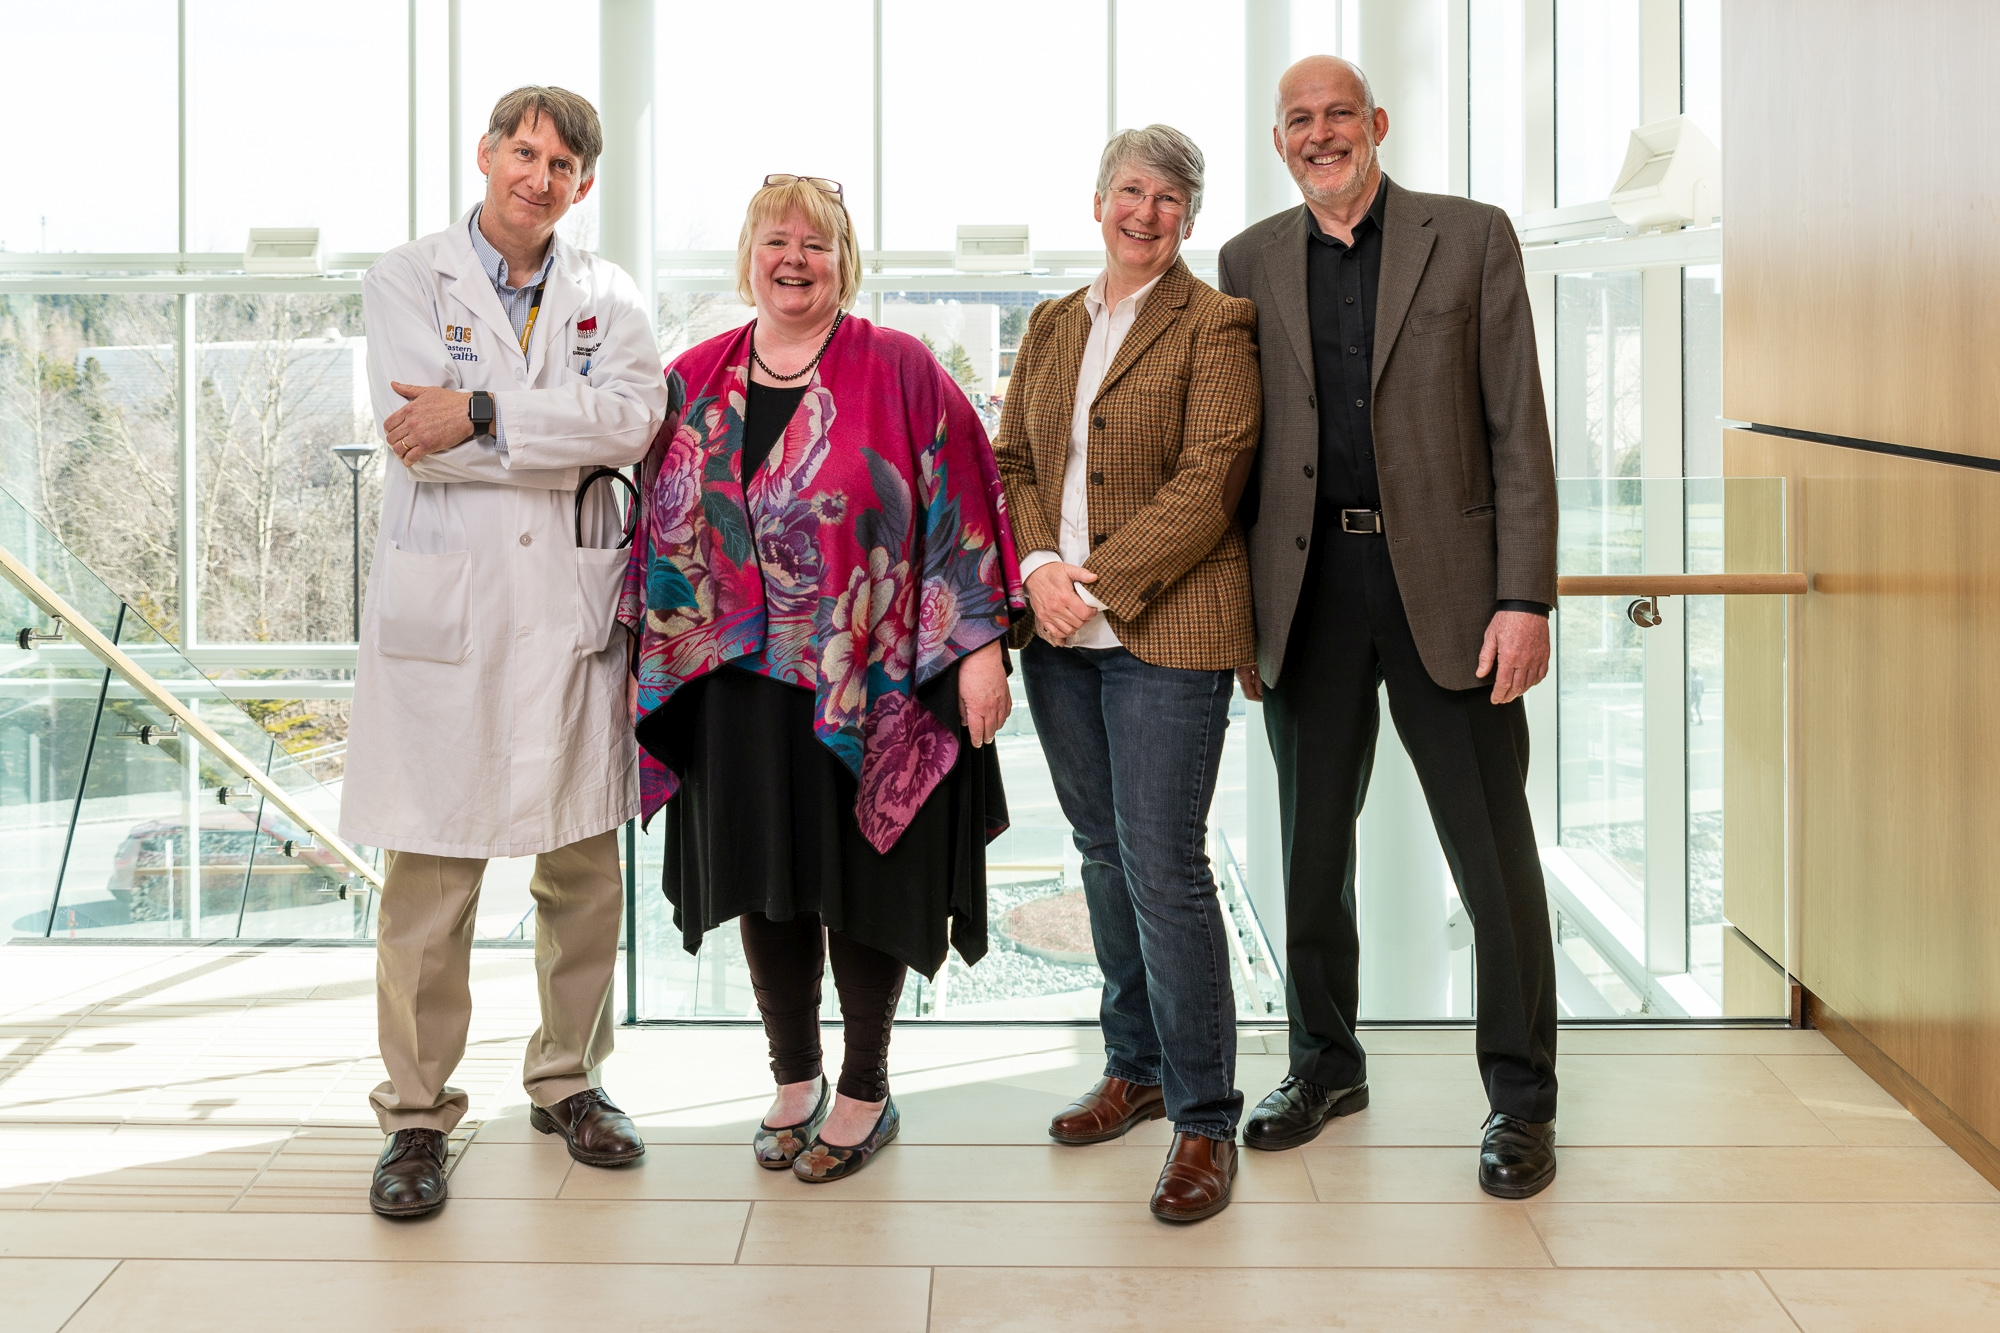 Drs. Sean Connors, Kathy Hodgkinson, Terry-Lynn Young and Daryl Pullman.